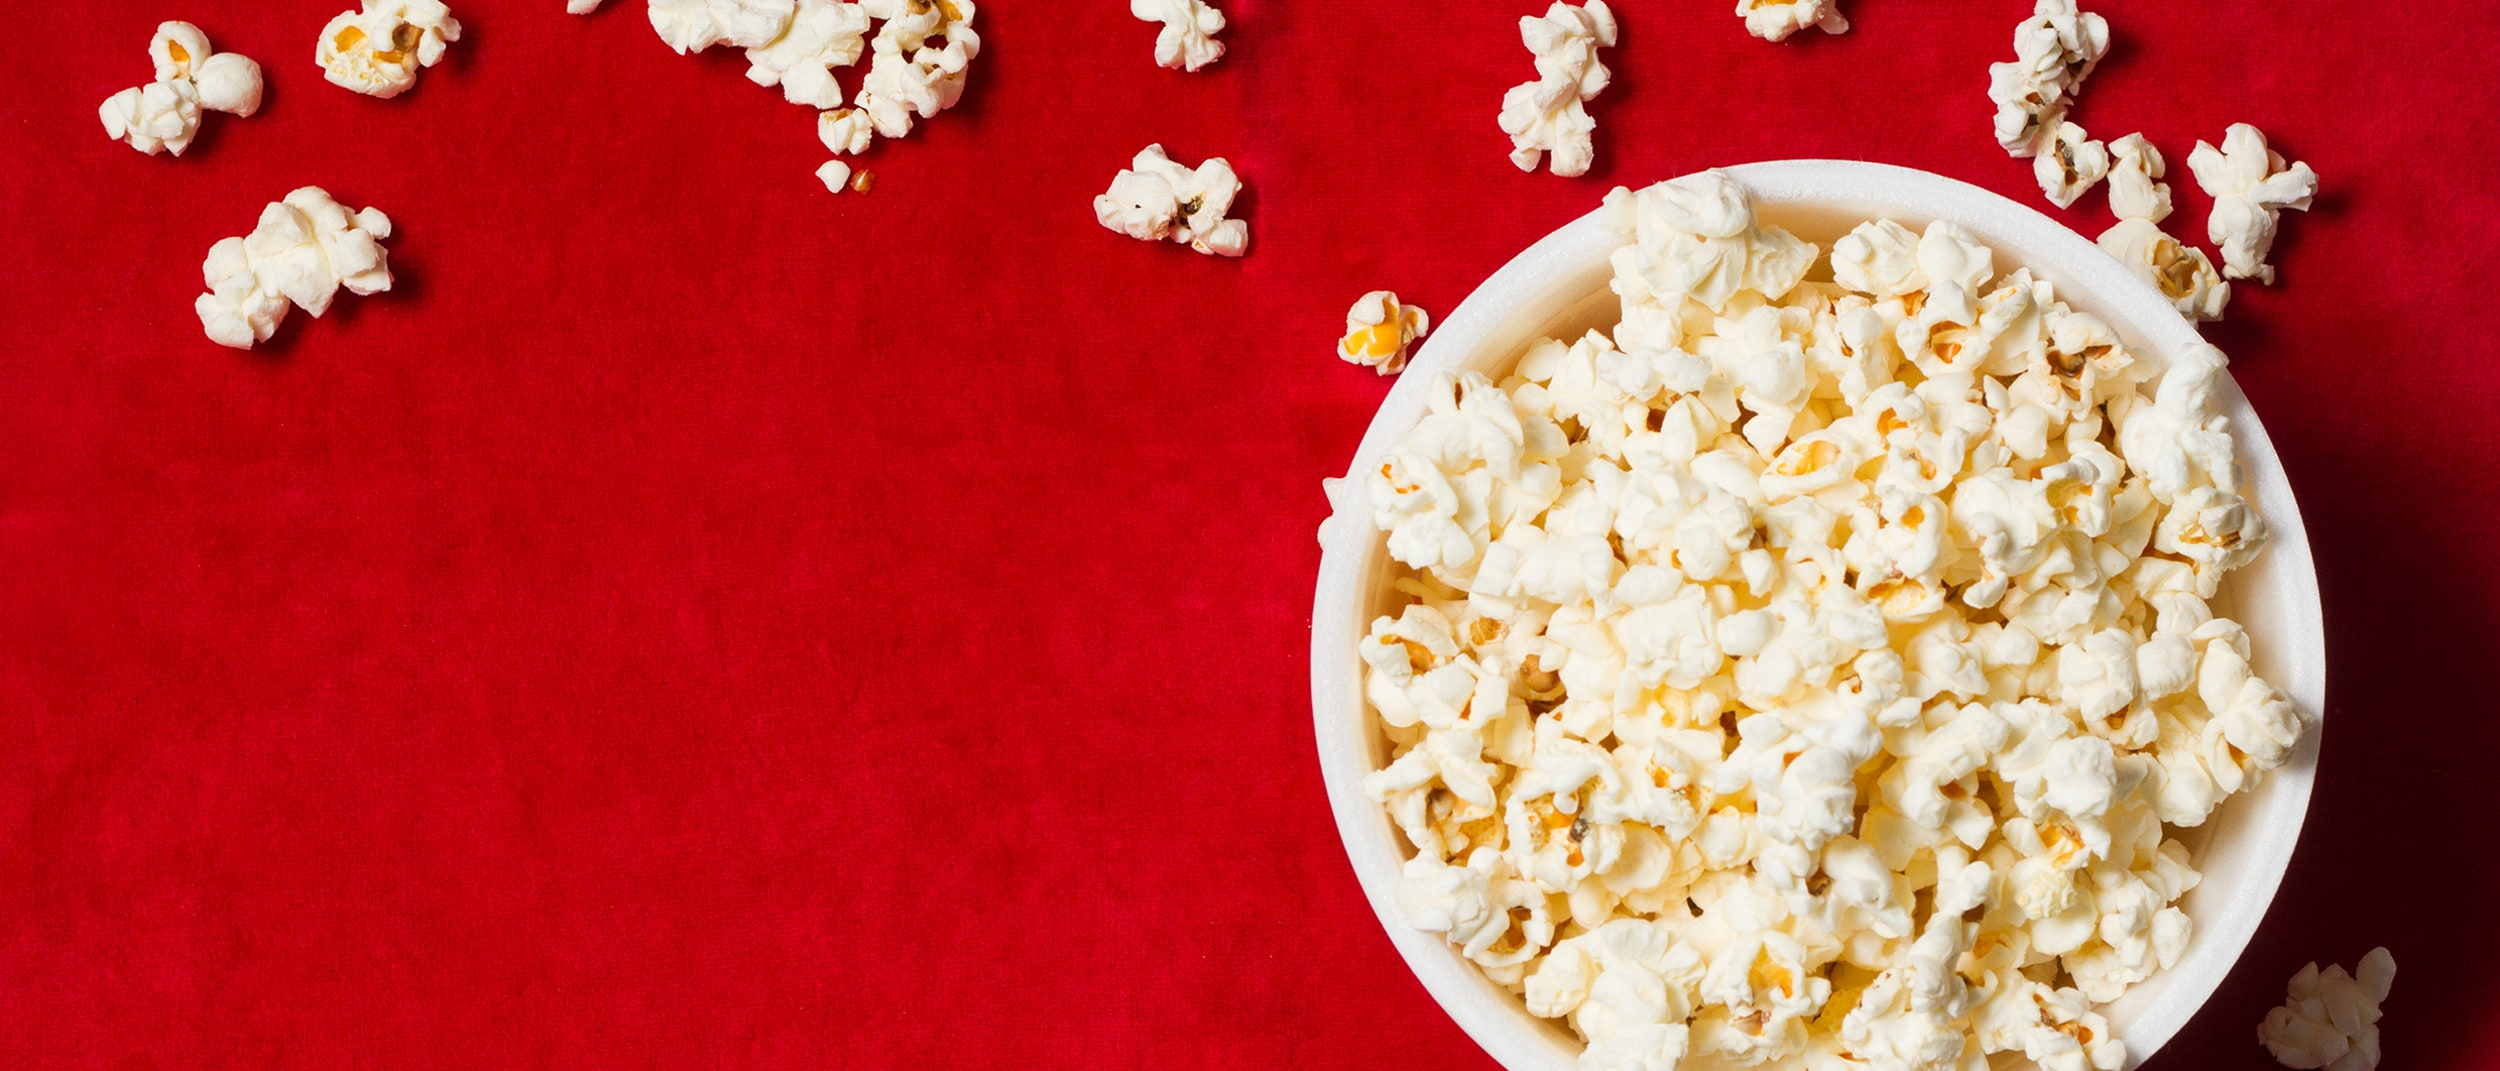 Hoyts: $10 tickets & $28 LUX tickets | renovation special